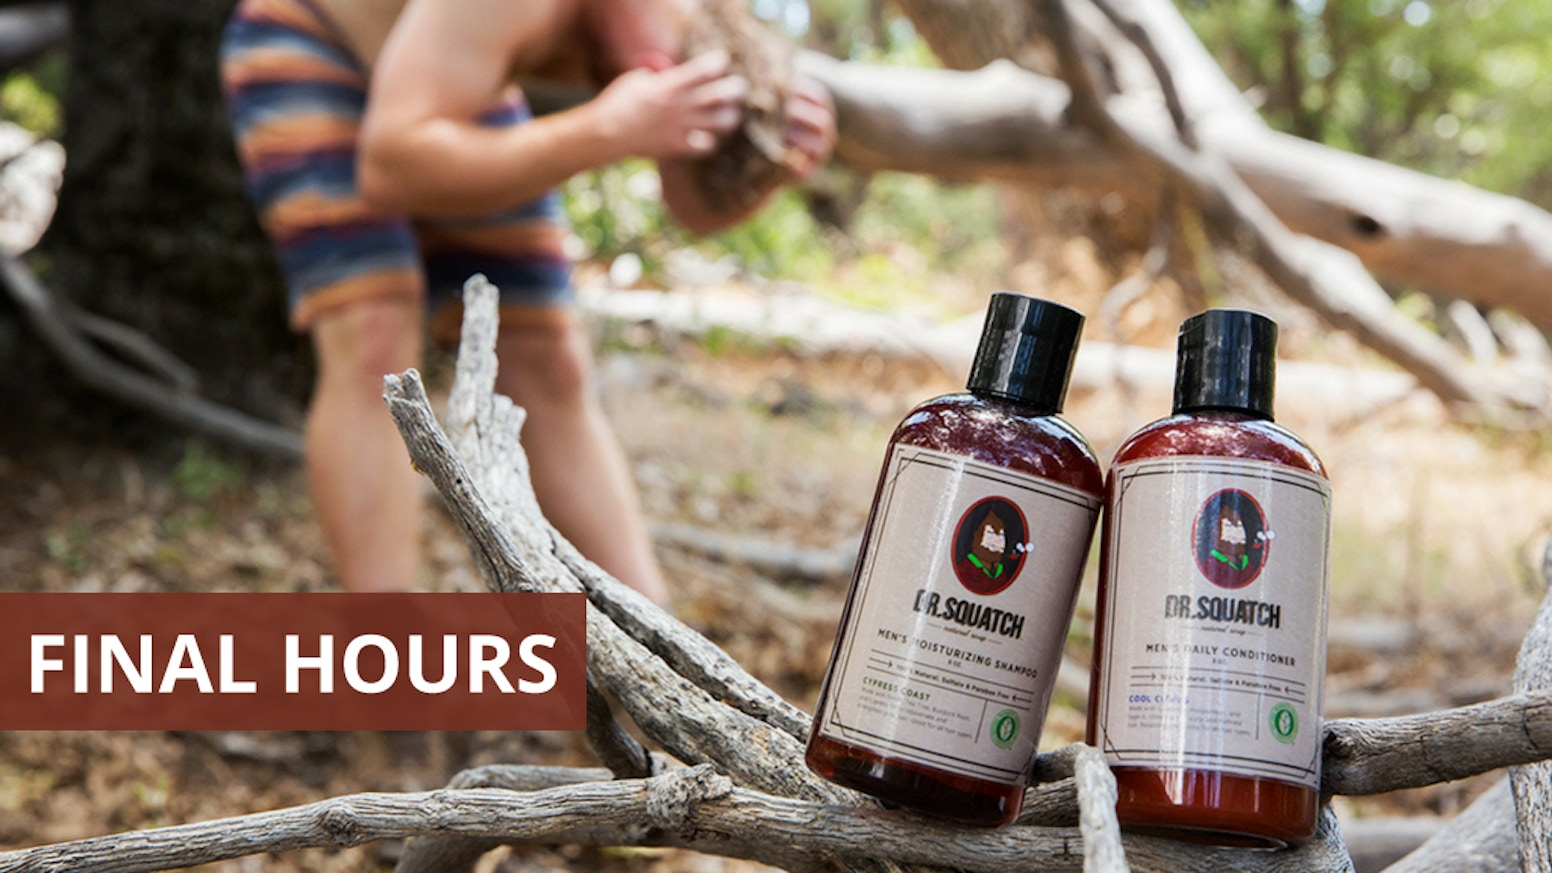 100% natural, NPA certified shampoo & conditioner for men.